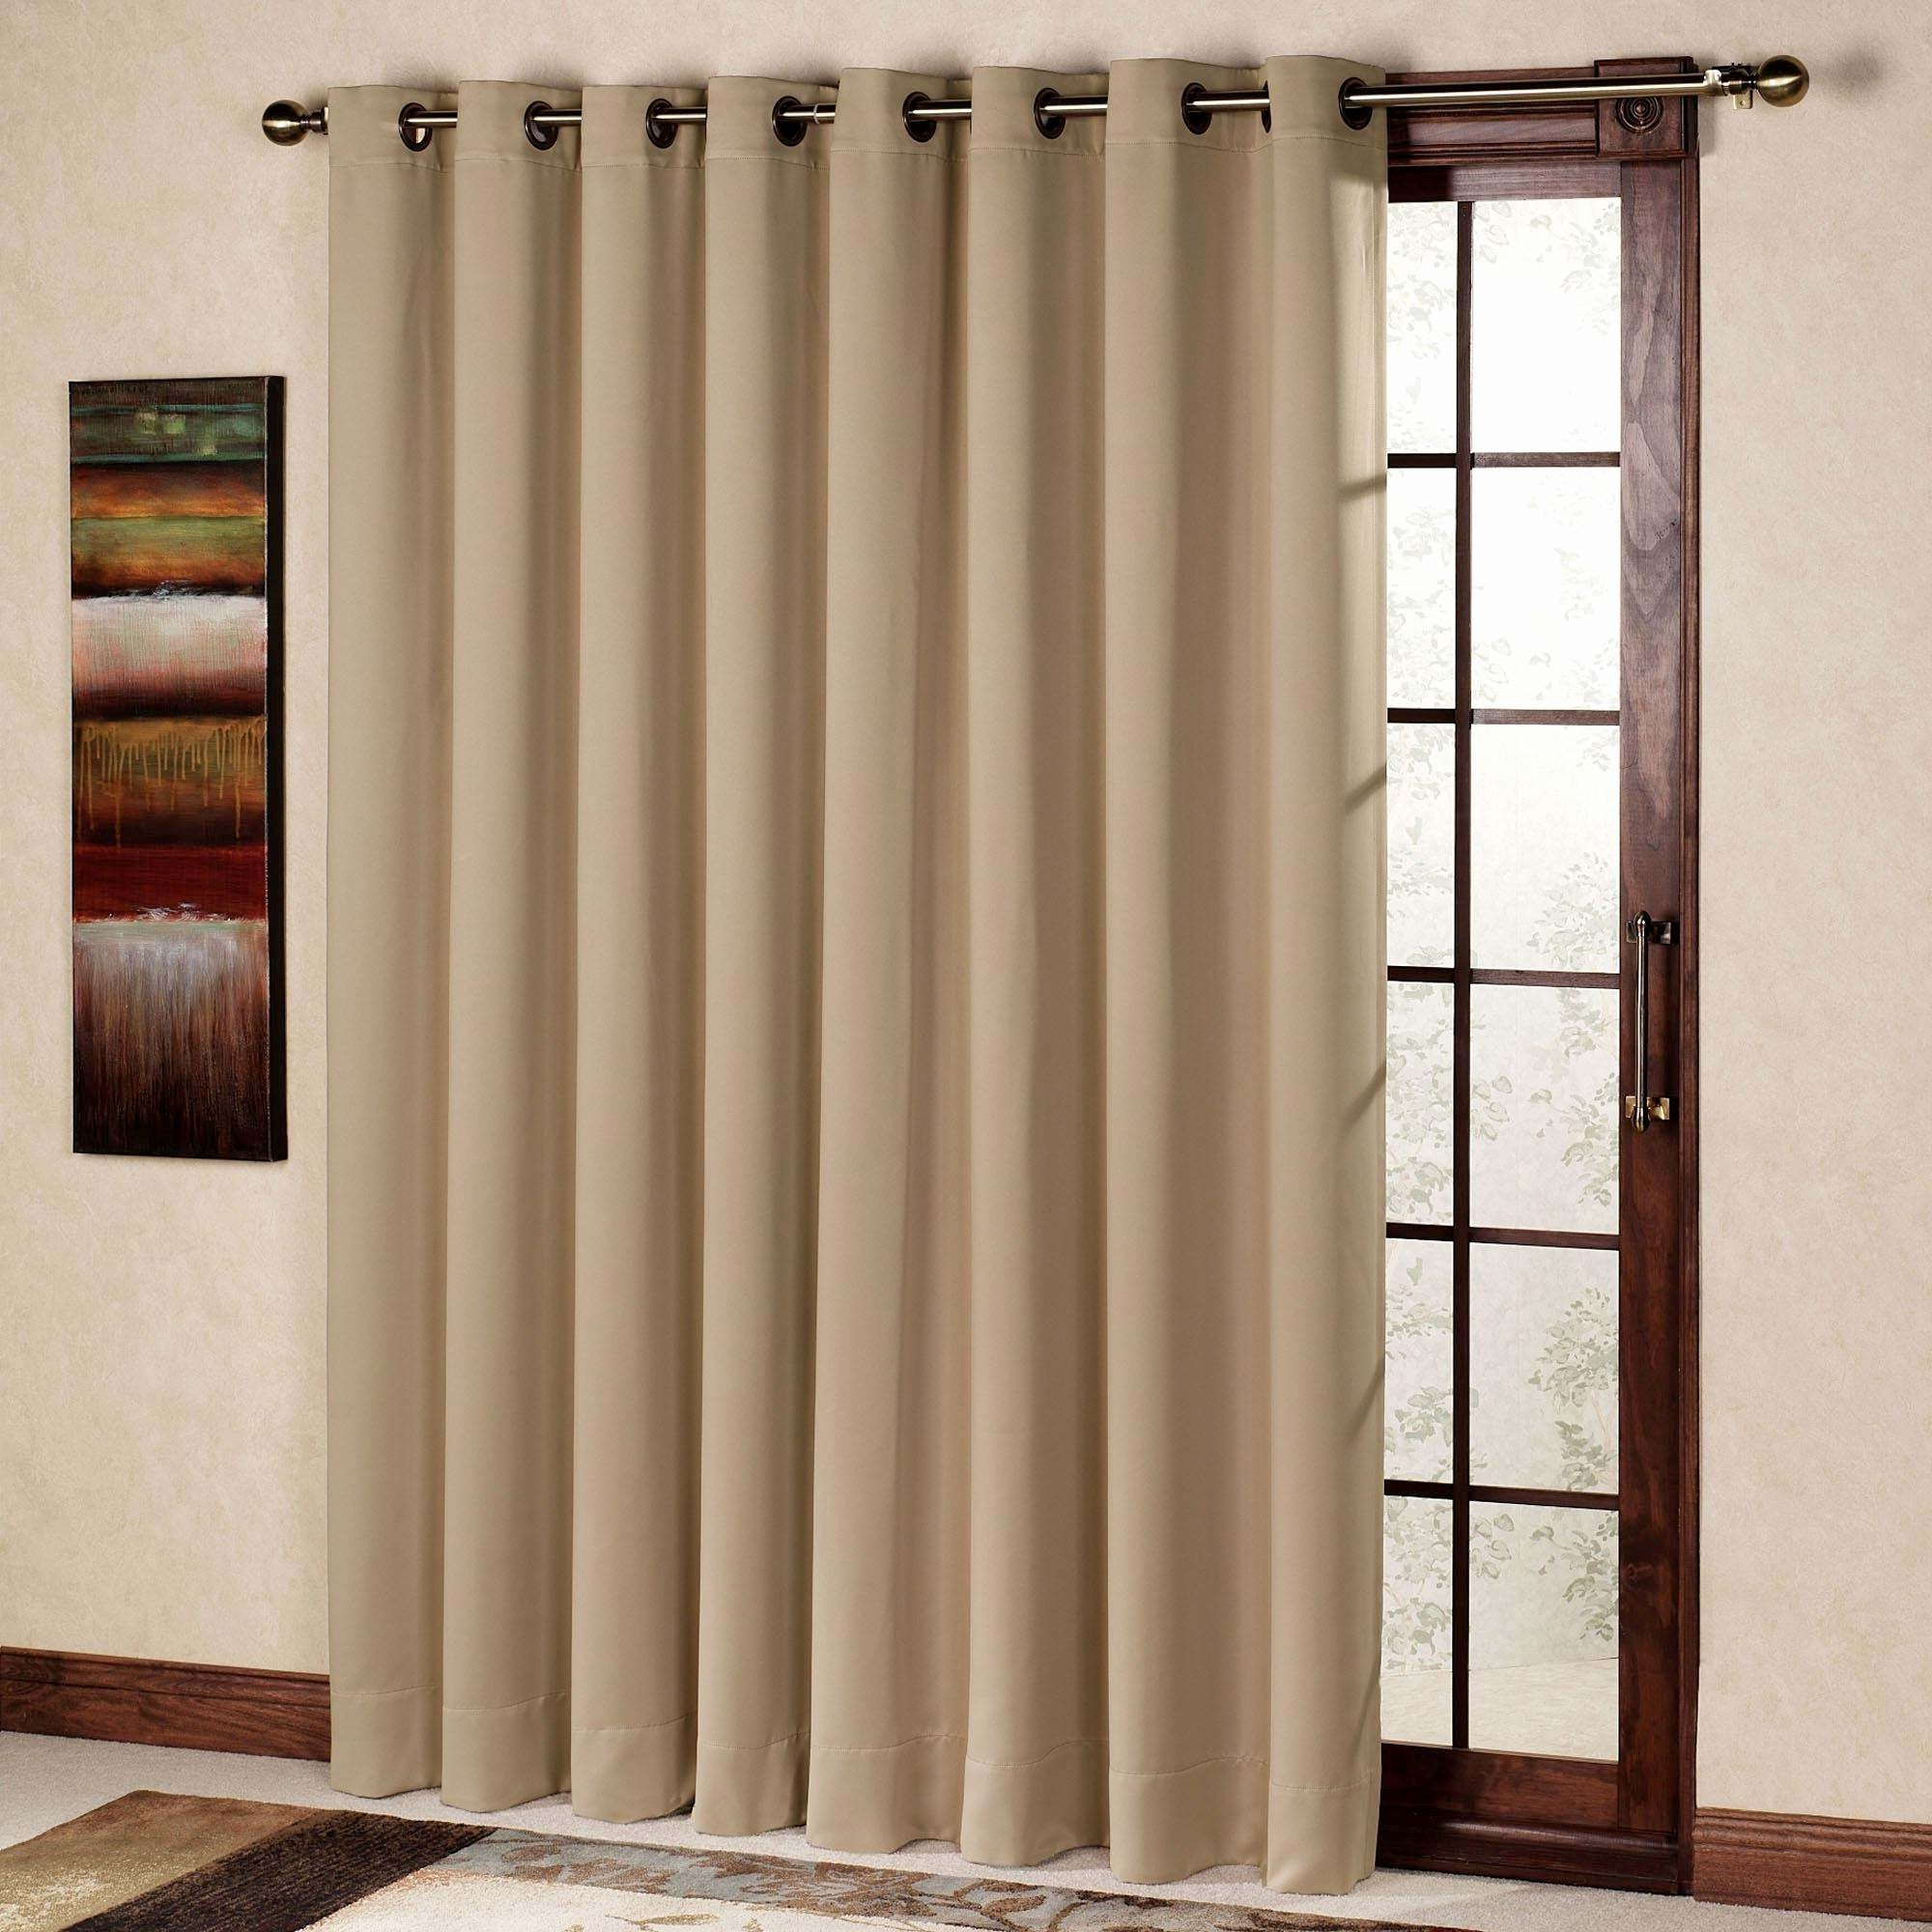 Image of: French Patio Door Window Treatment Ideas